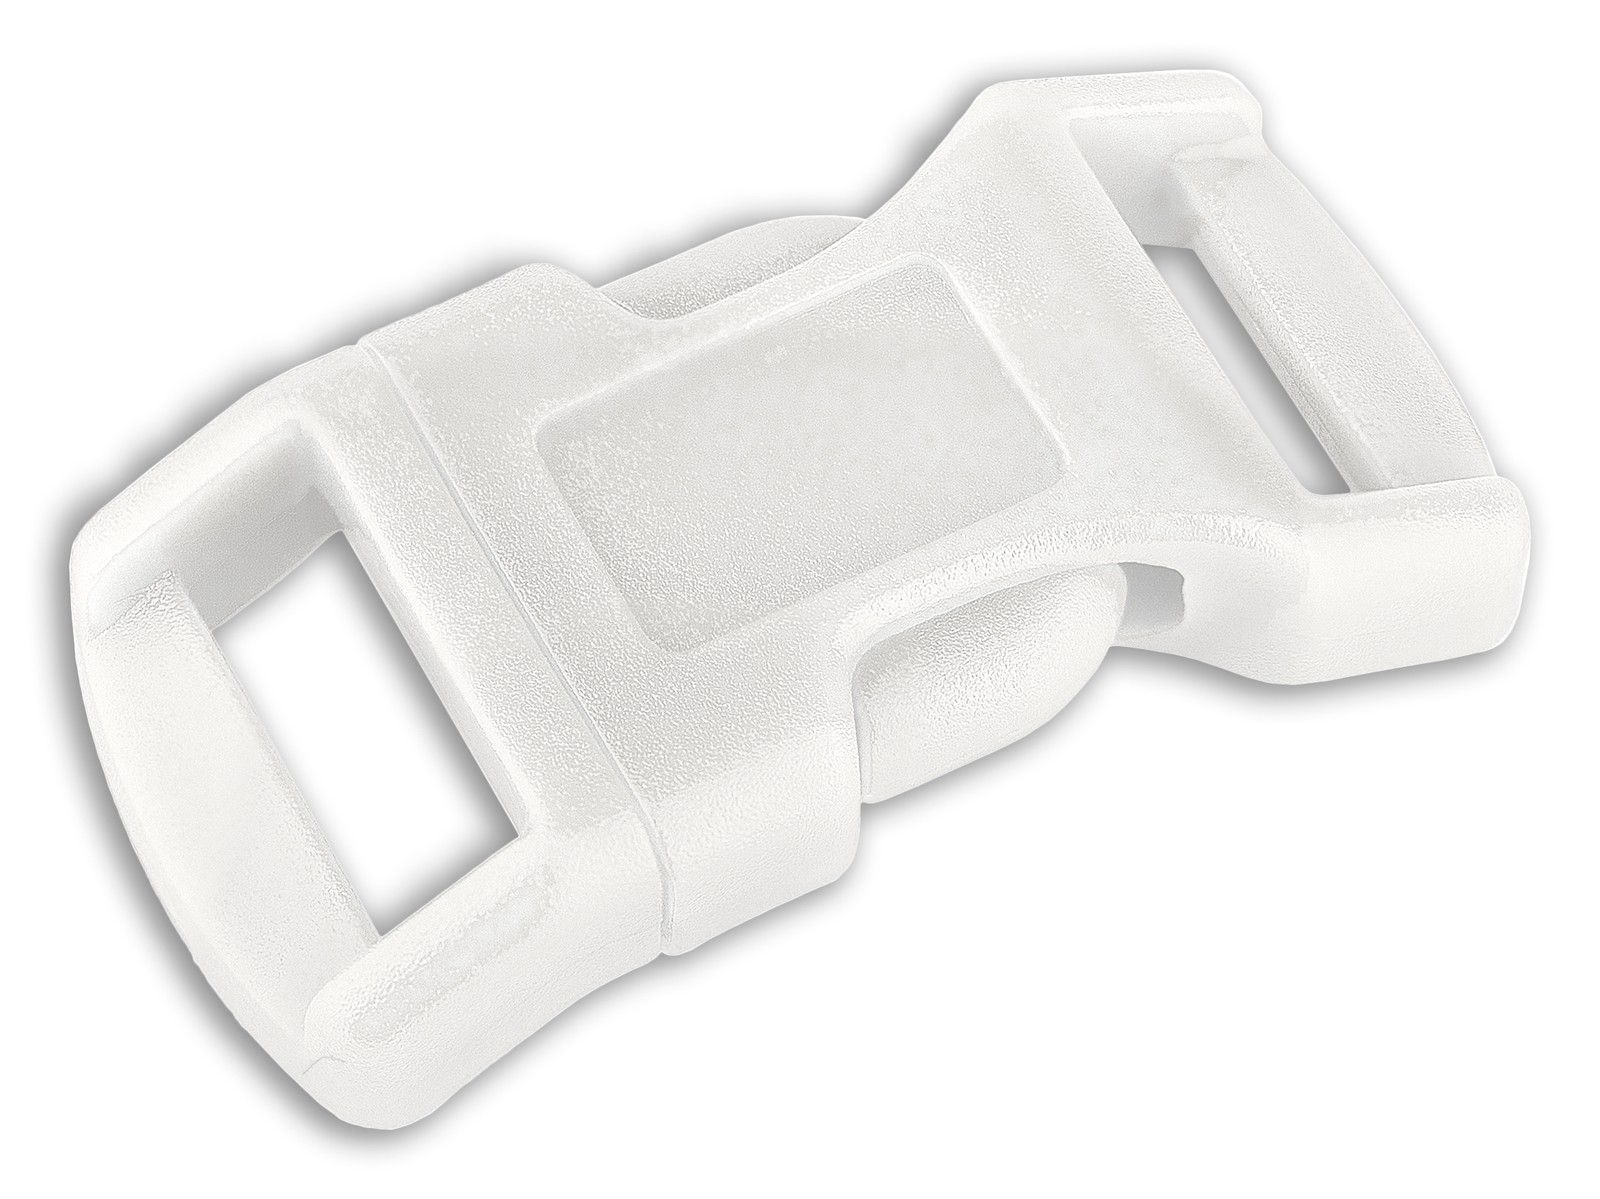 10-1//2 Inch White Economy Contoured Side Release Plastic Buckle Closeout